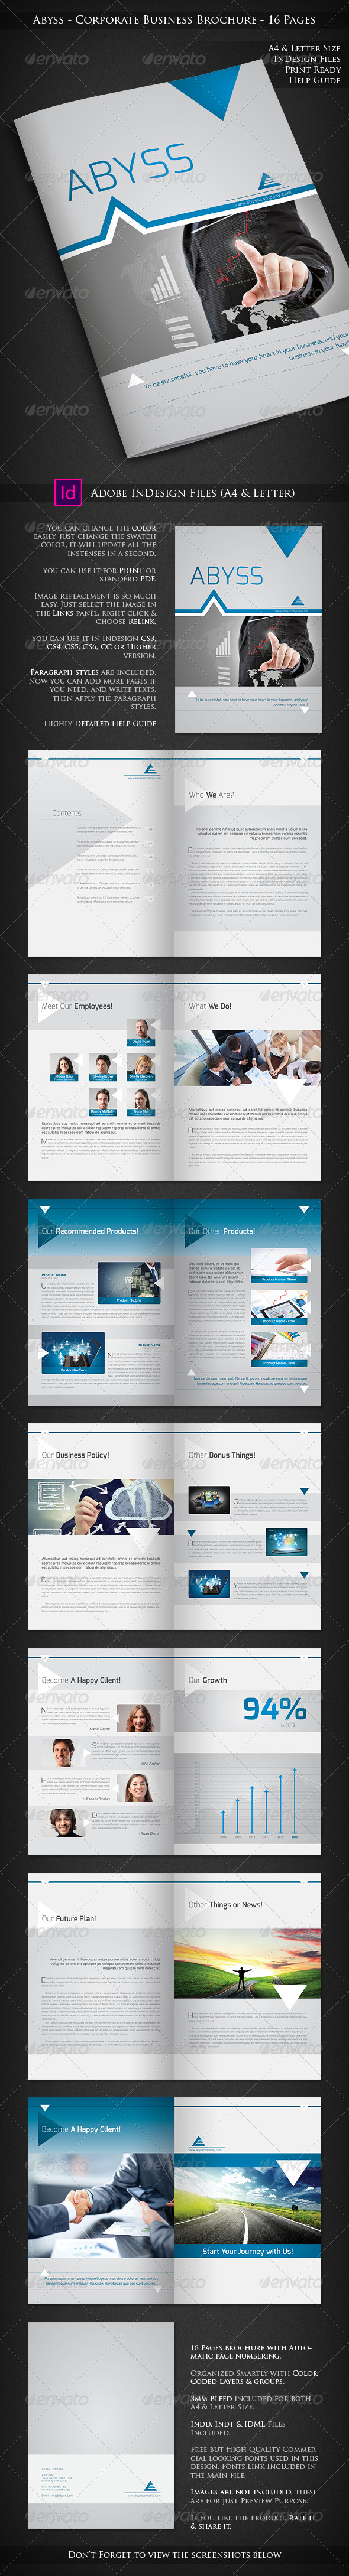 Abyss - Corporate Business Brochure - 16 Pages - Corporate Brochures